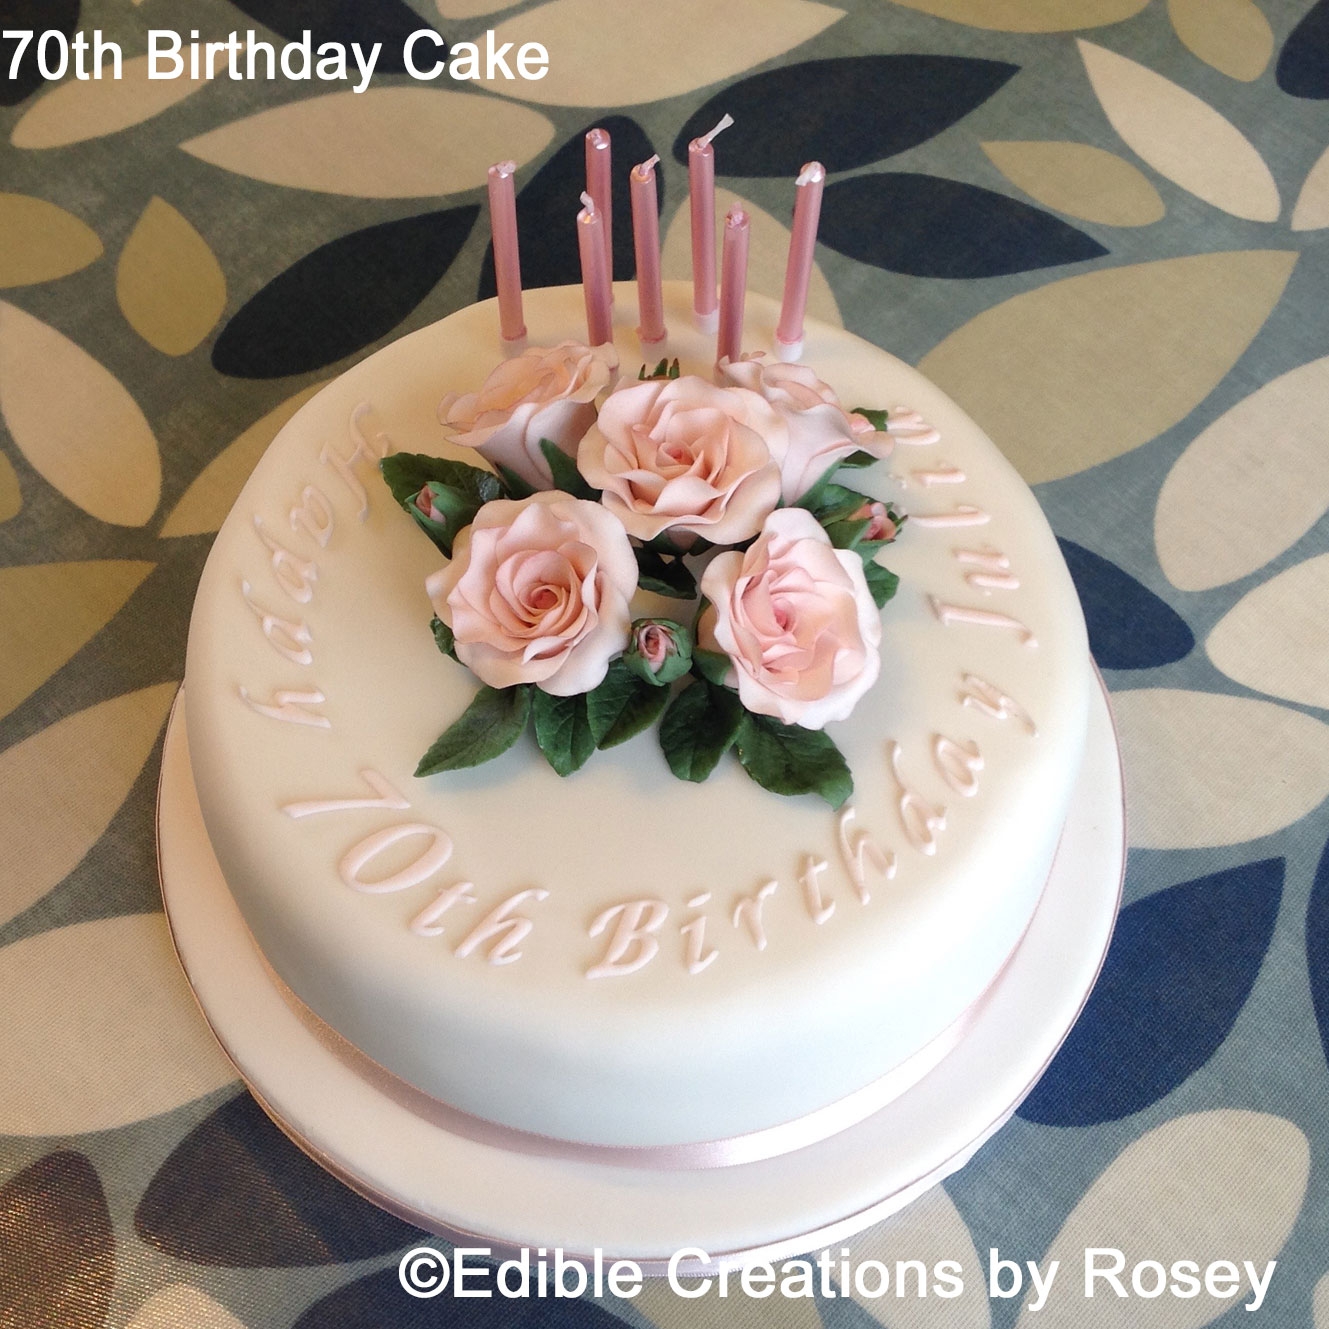 Birthday Cakes By Edible Creations By Rosey In South West